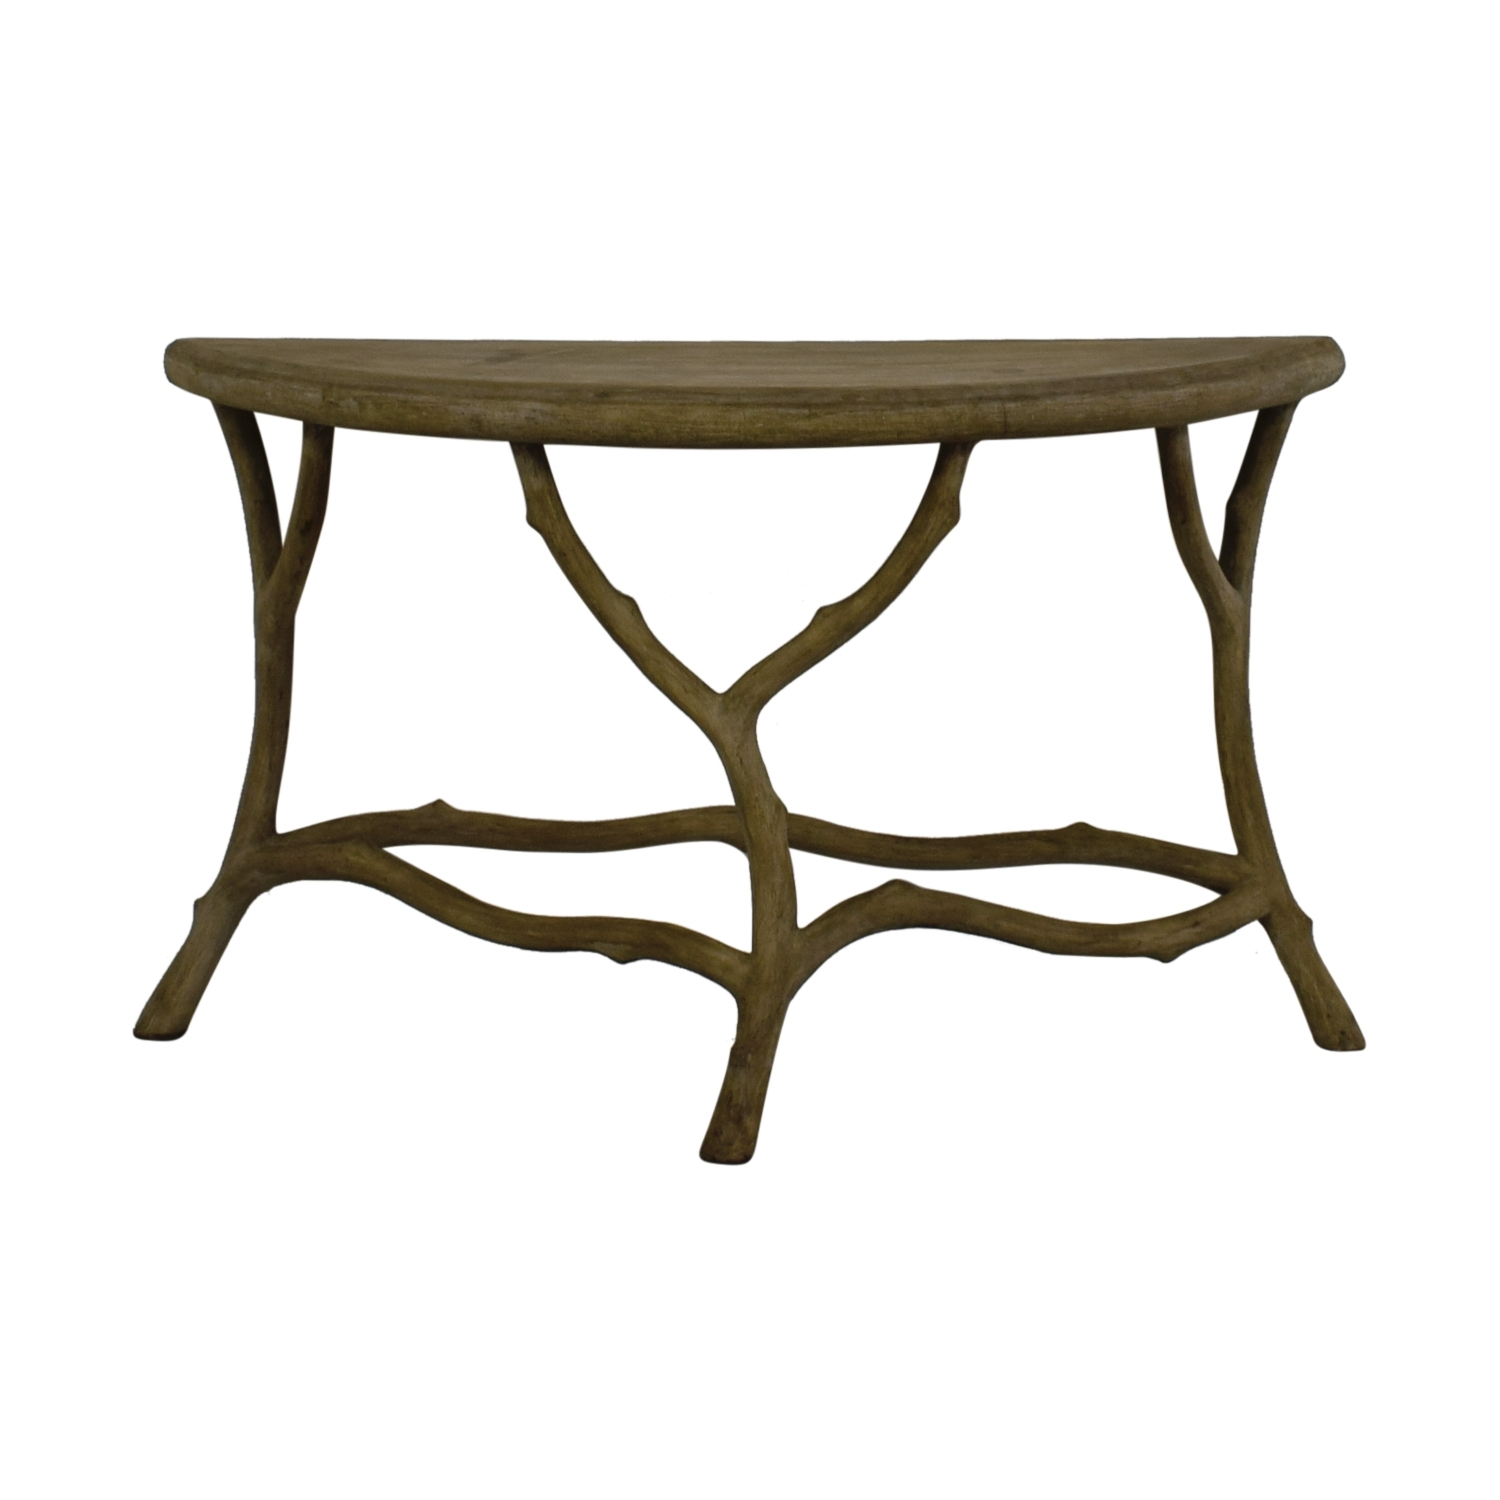 [%best And Newest Faux Bois Coffee Tables Regarding 90% Off – Horchow Horchow Grey Faux Bois Half Table / Tables|90% Off – Horchow Horchow Grey Faux Bois Half Table / Tables Regarding Well Known Faux Bois Coffee Tables%] (View 17 of 20)